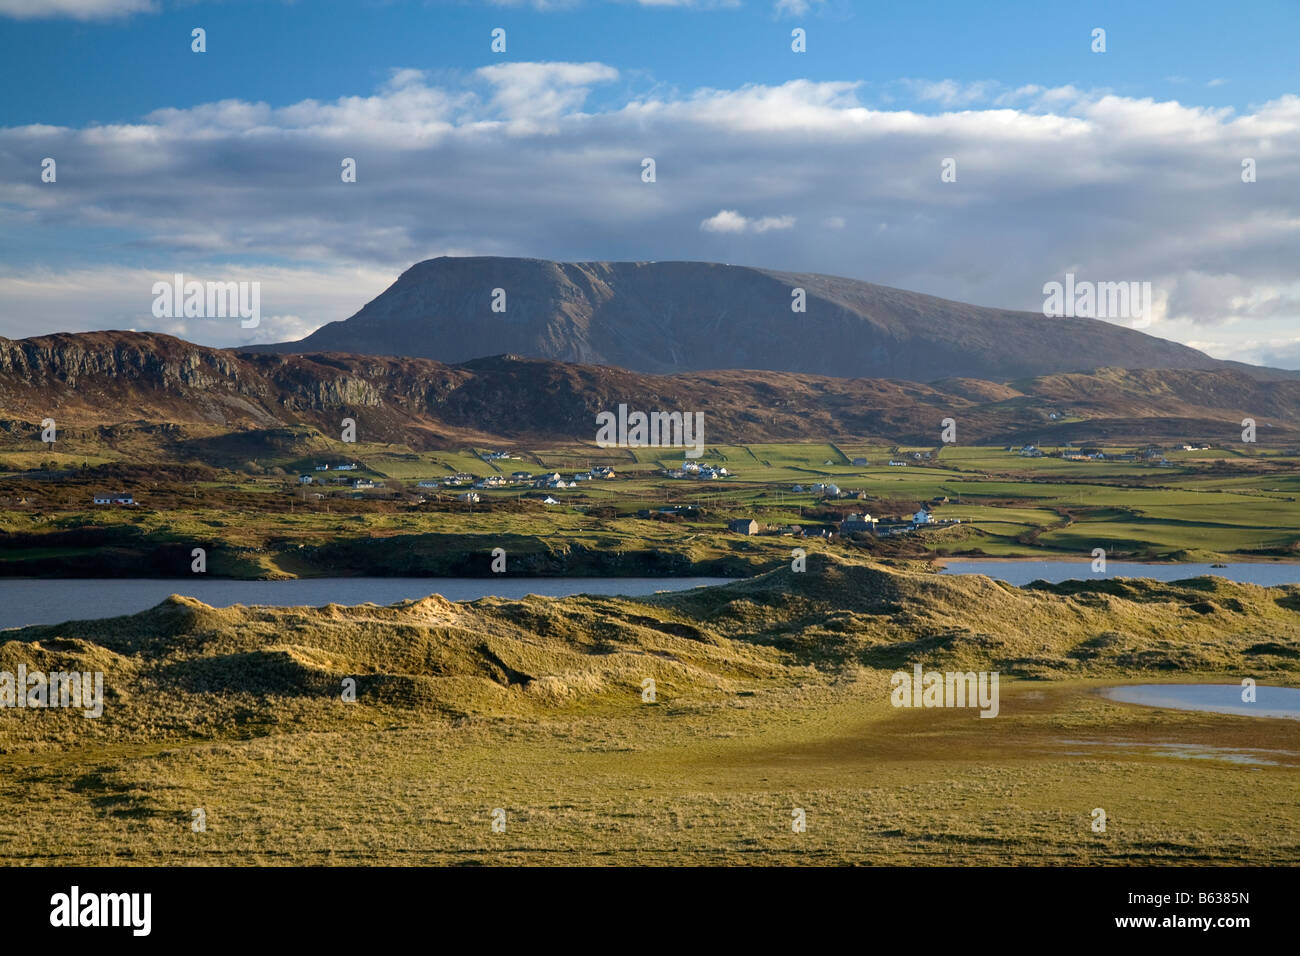 View of Muckish Mountain from the sand dunes of Horn Head. Near Dunfanaghy, County Donegal, Ireland. - Stock Image